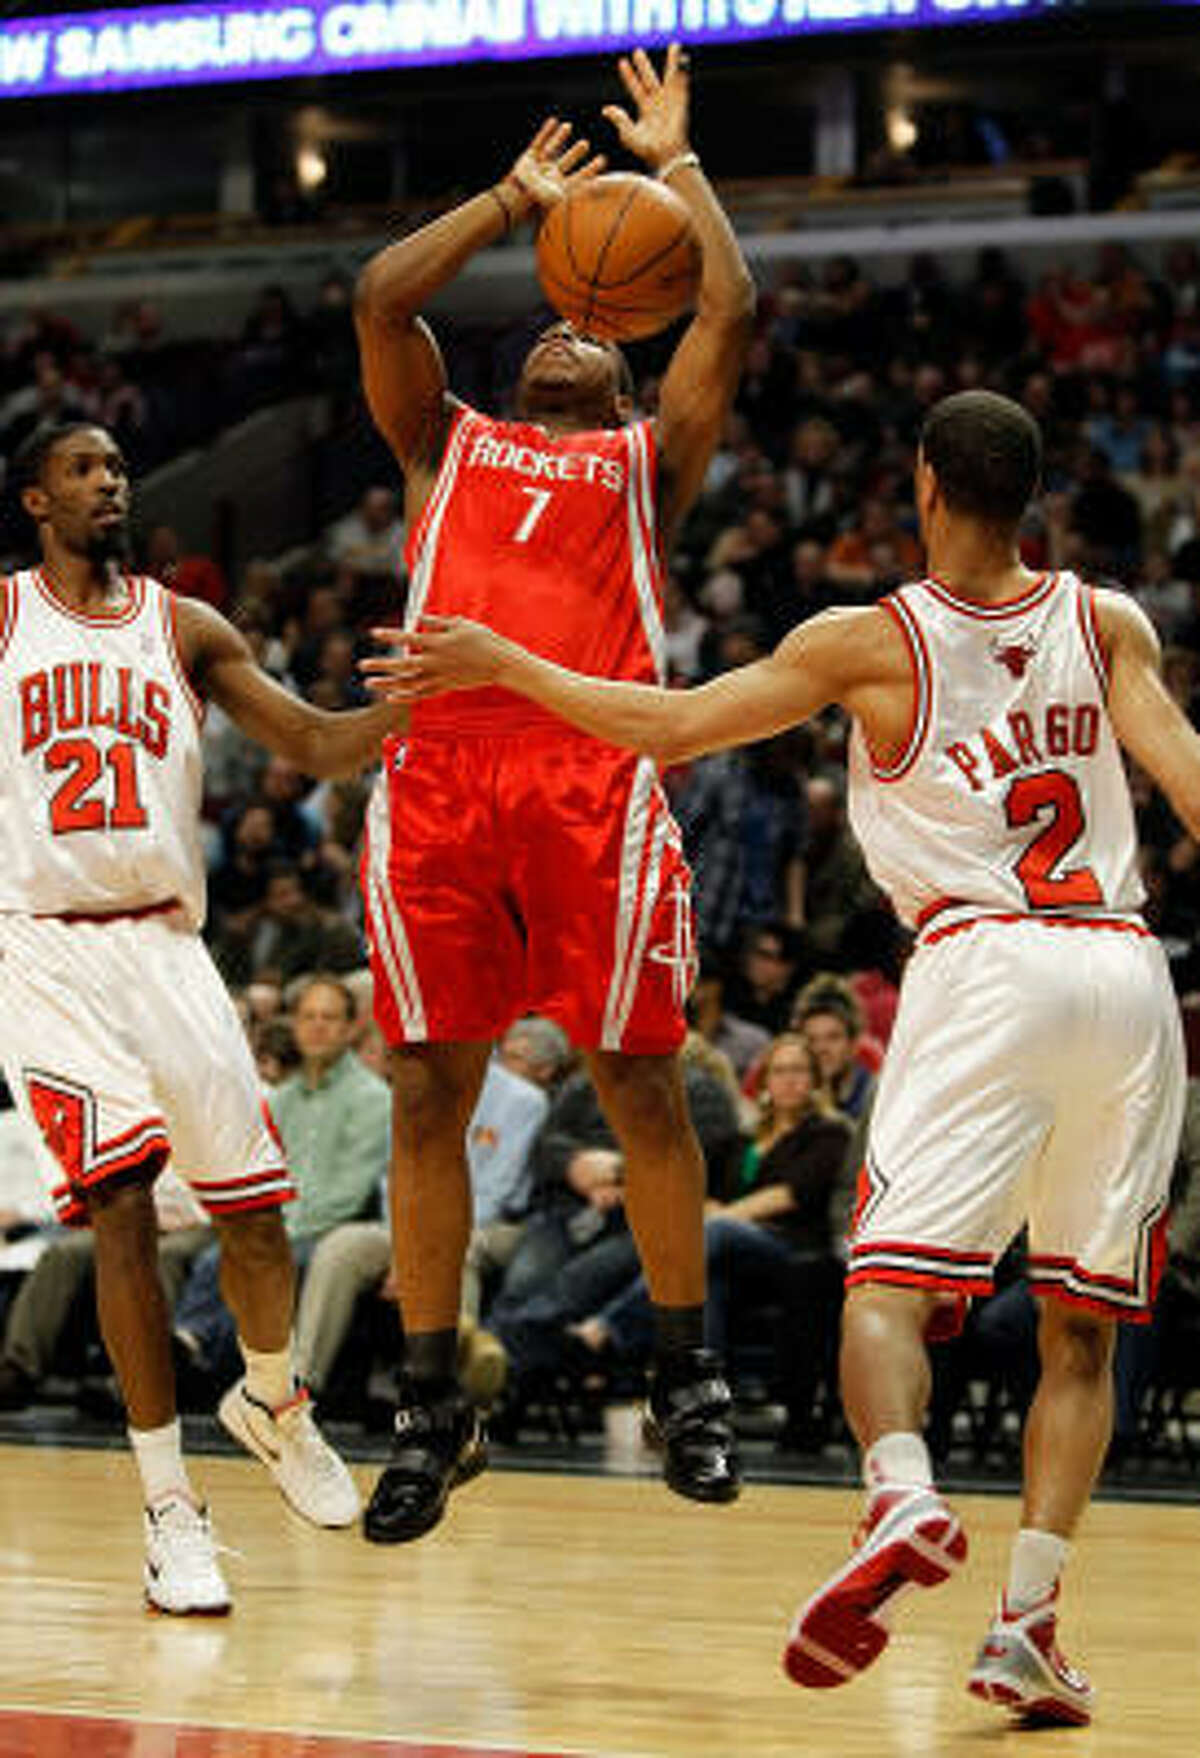 Rockets guard Kyle Lowry loses control of the ball between Hakim Warrick and Jannero Pargo of the Chicago Bulls.